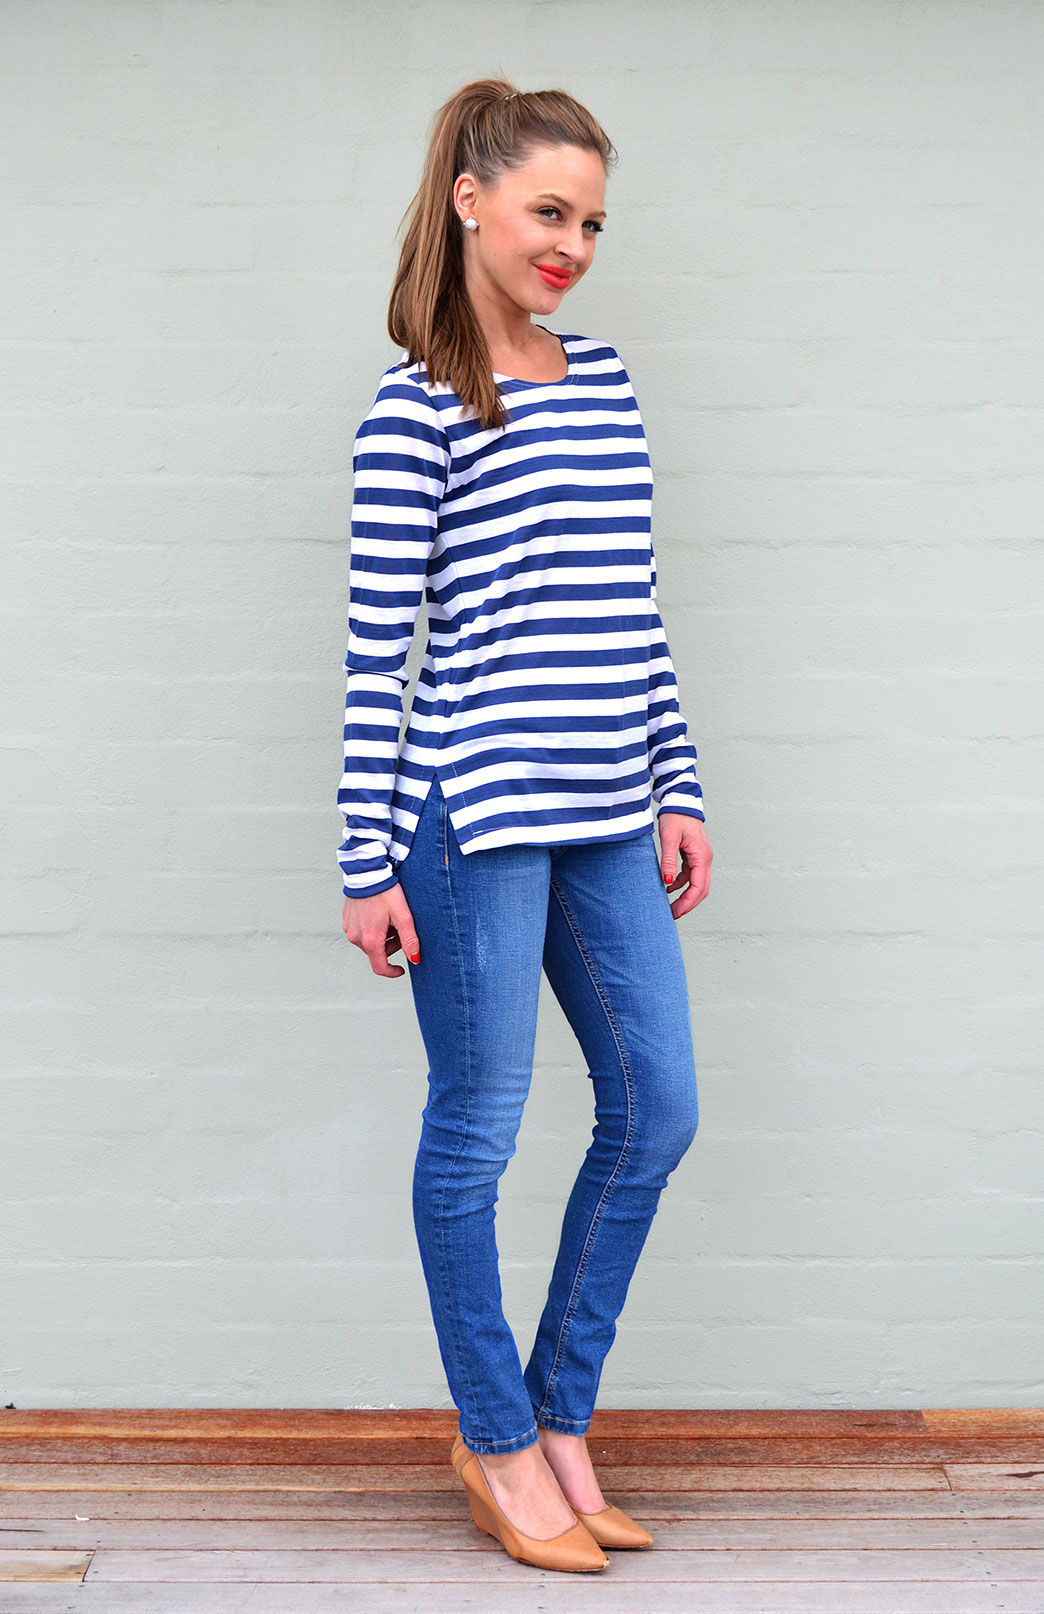 Lucy Top - Women's Long Sleeve Striped Wool Top - Smitten Merino Tasmania Australia